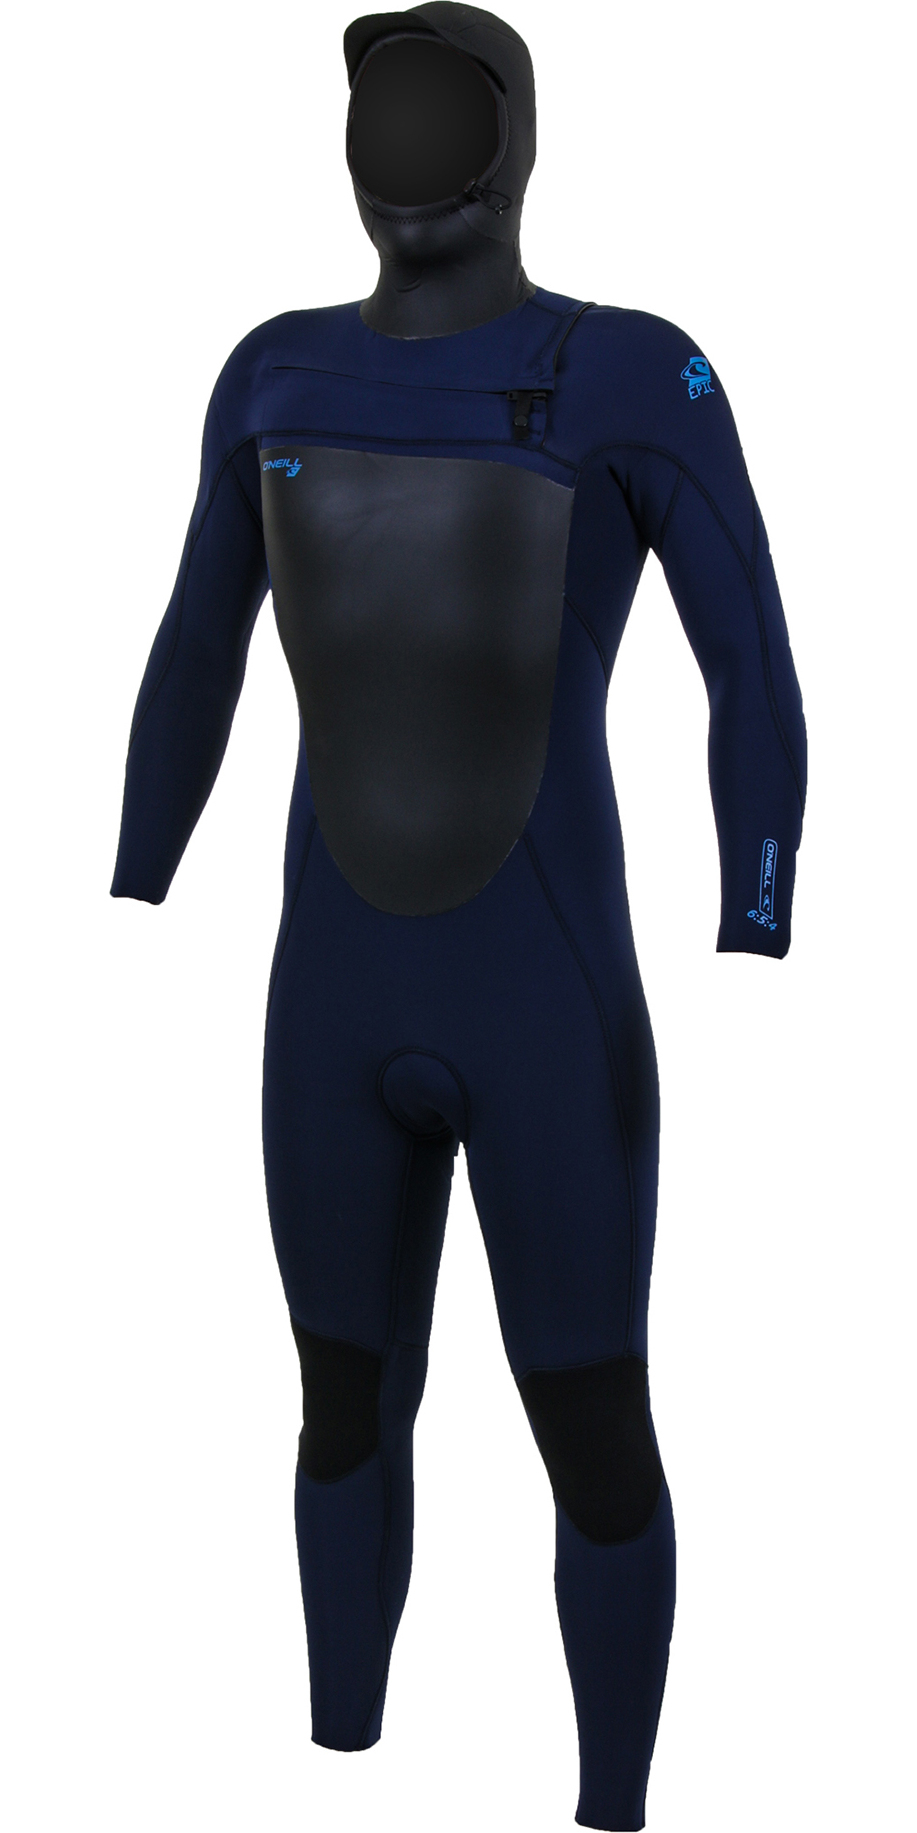 2019 O'Neill Mens Epic 6/5/4mm Chest Zip Hooded Wetsuit Navy 5377